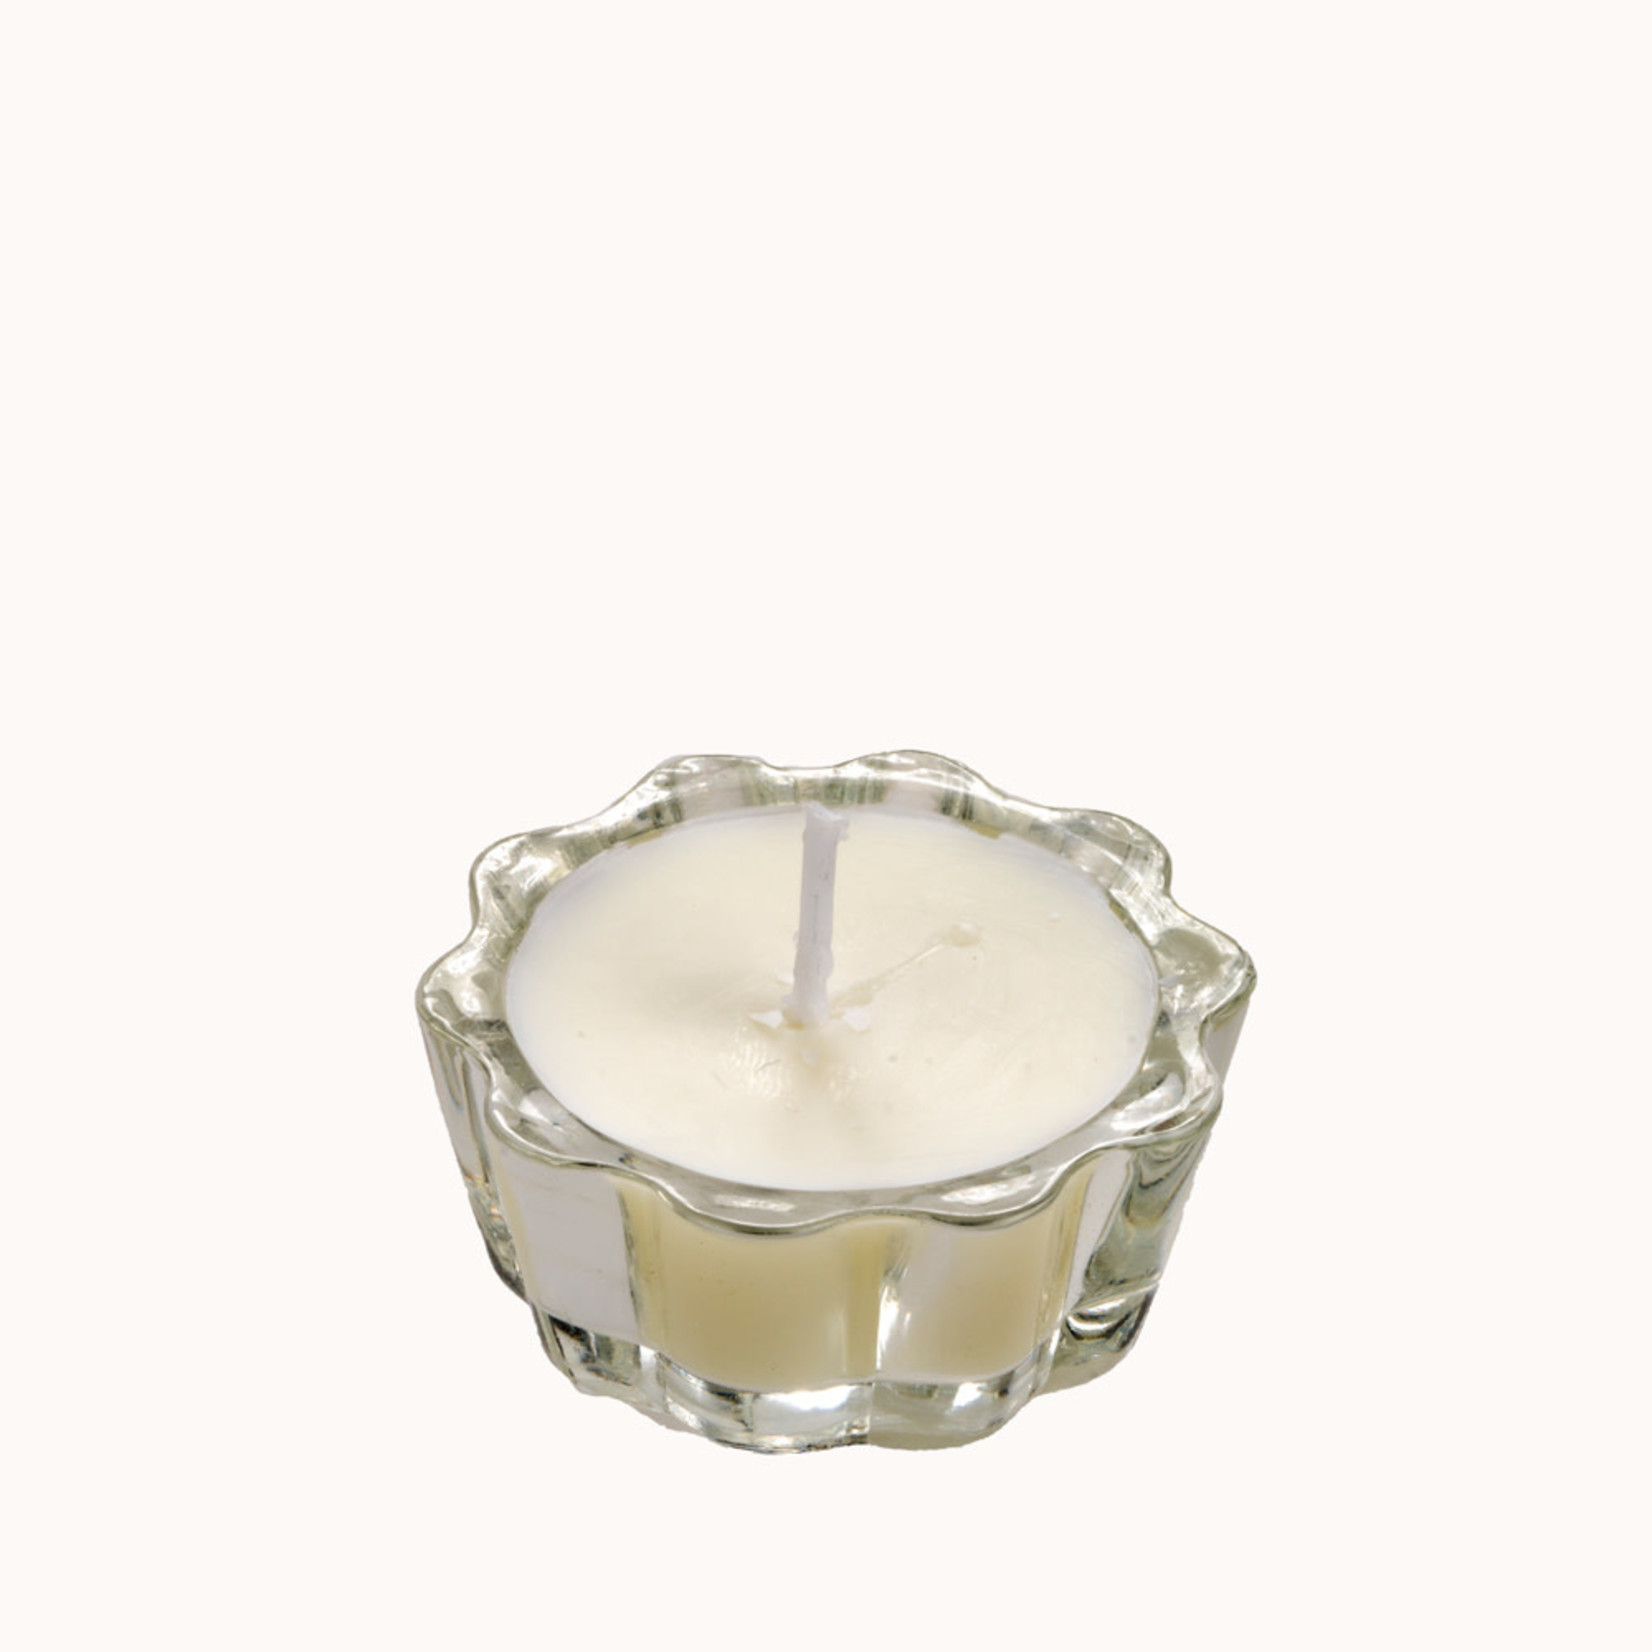 Home Society Flower Votive Candle  / Waxinelichtje Bloem White/Wit